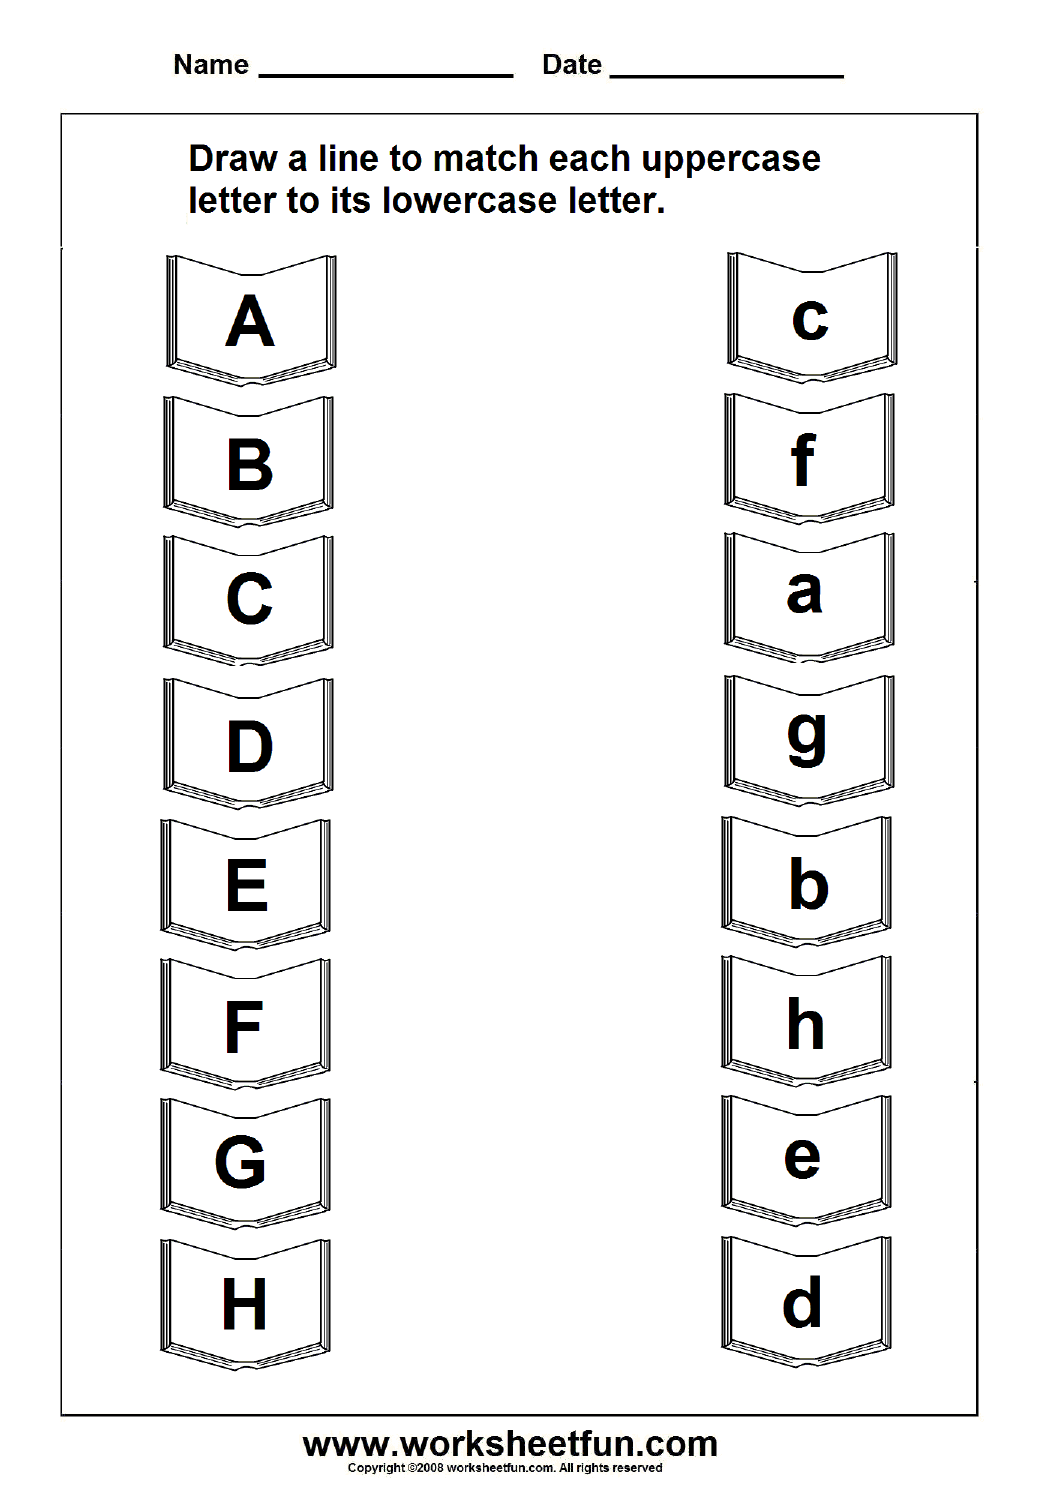 Worksheets Upper And Lowercase Letters Worksheets 8 best images of uppercase and lowercase letters printable worksheets